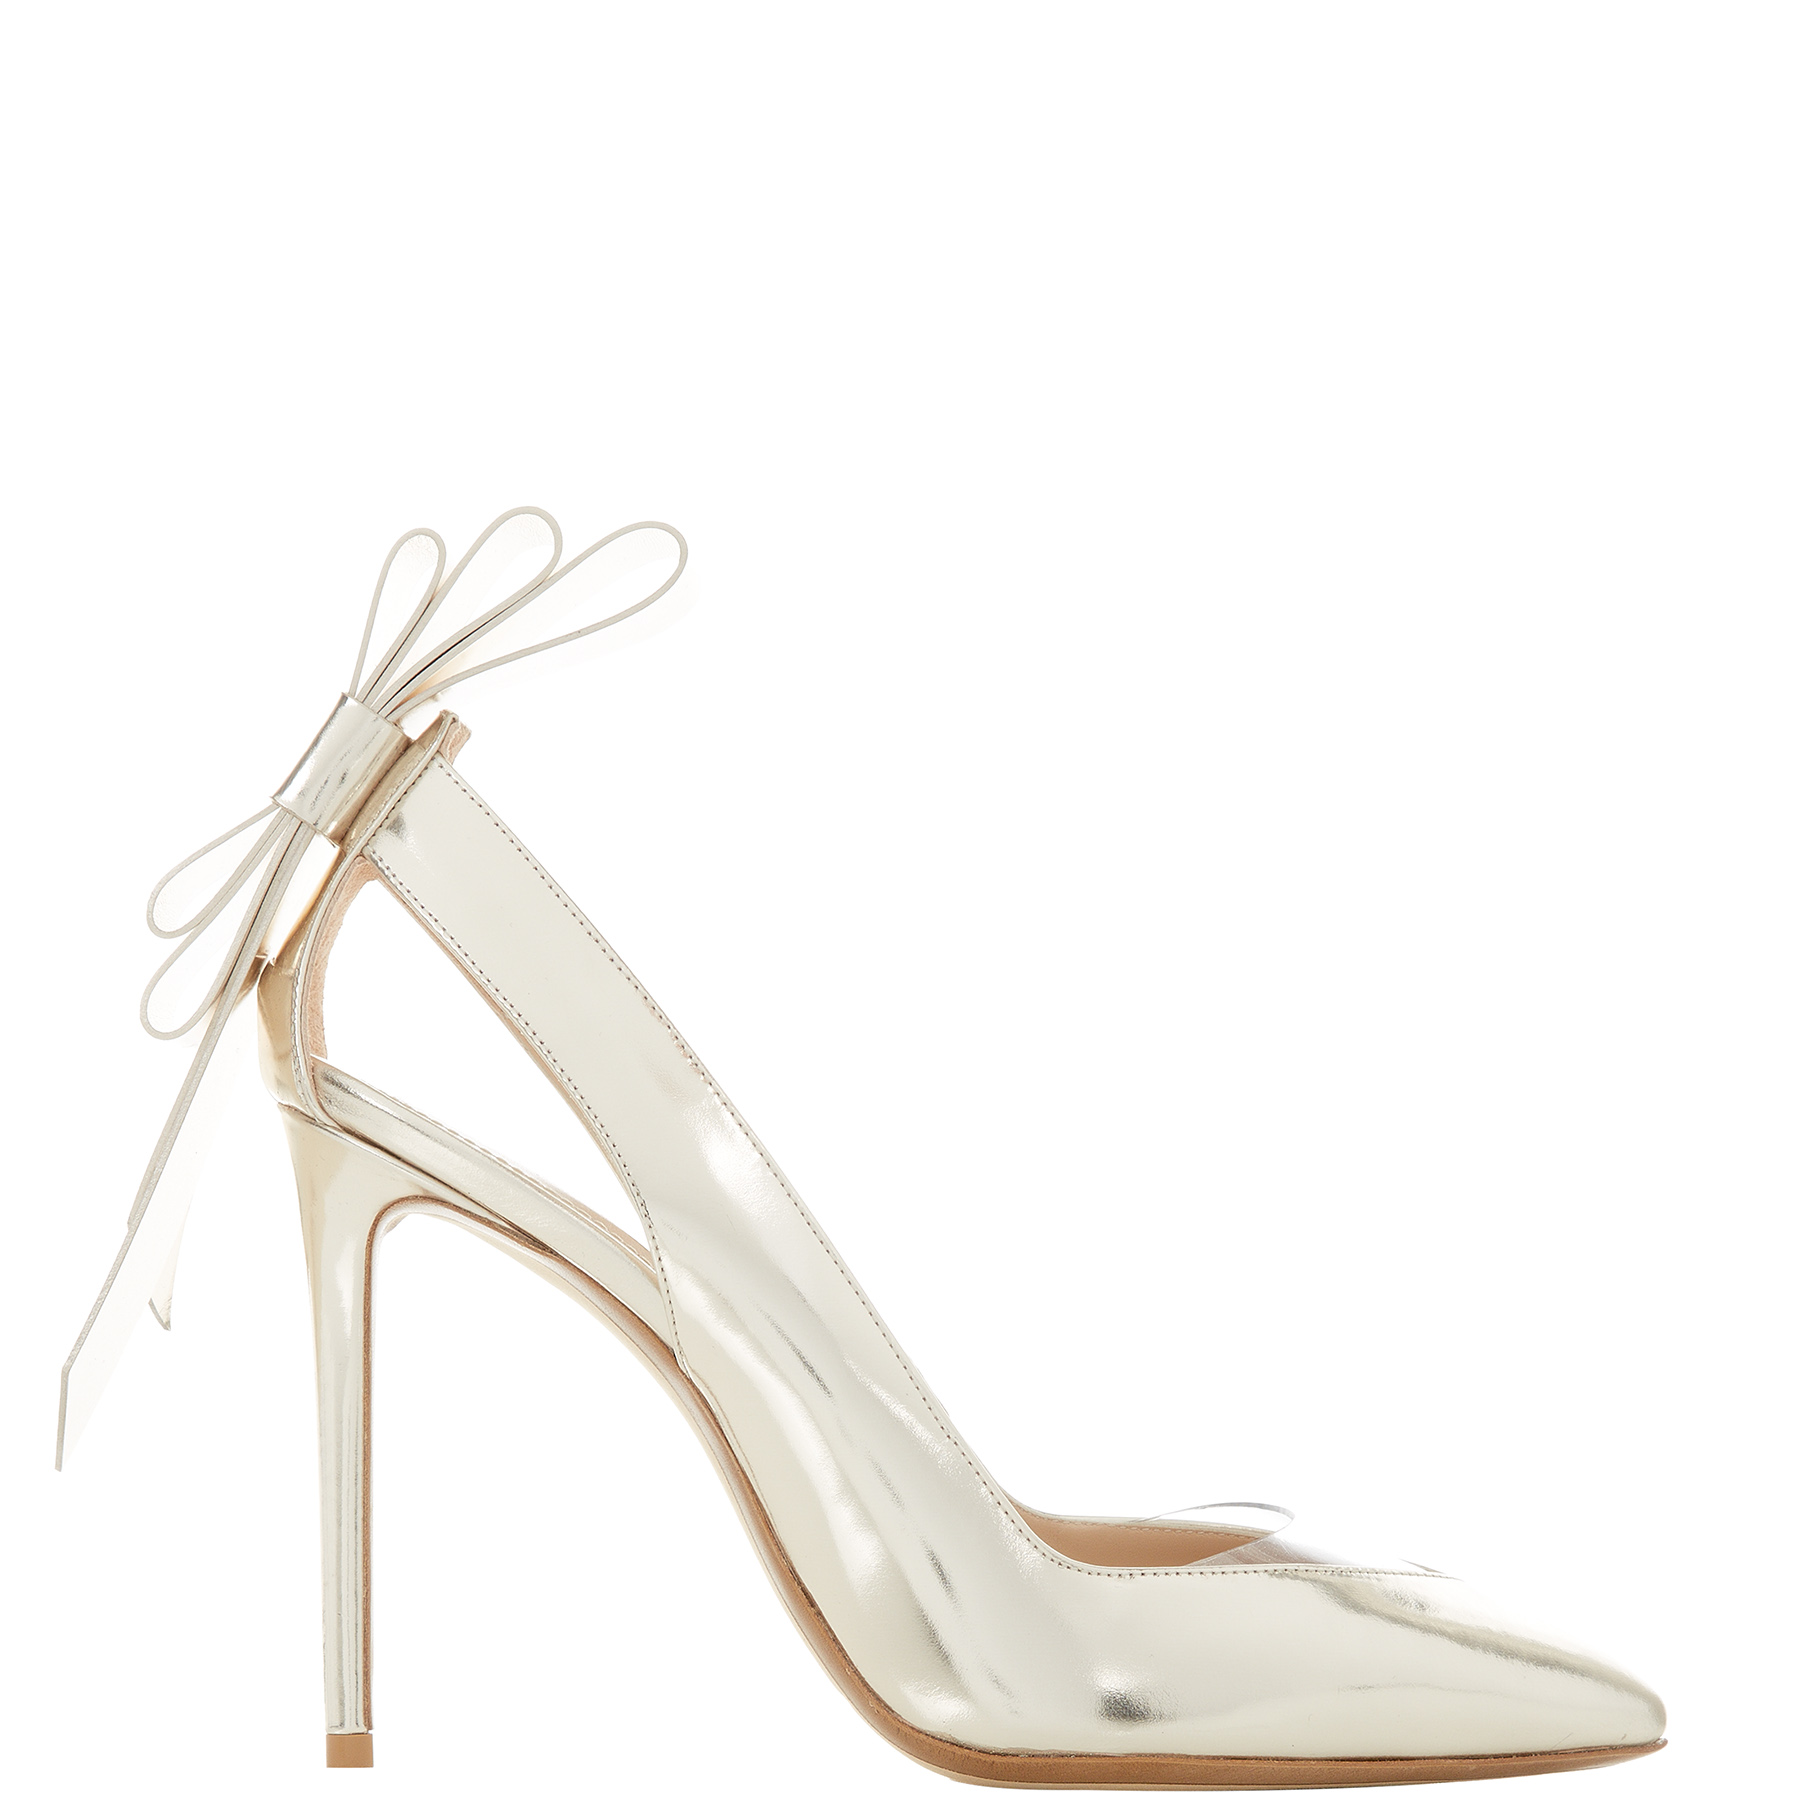 Nicholas Kirkwood Origami wedding shoes